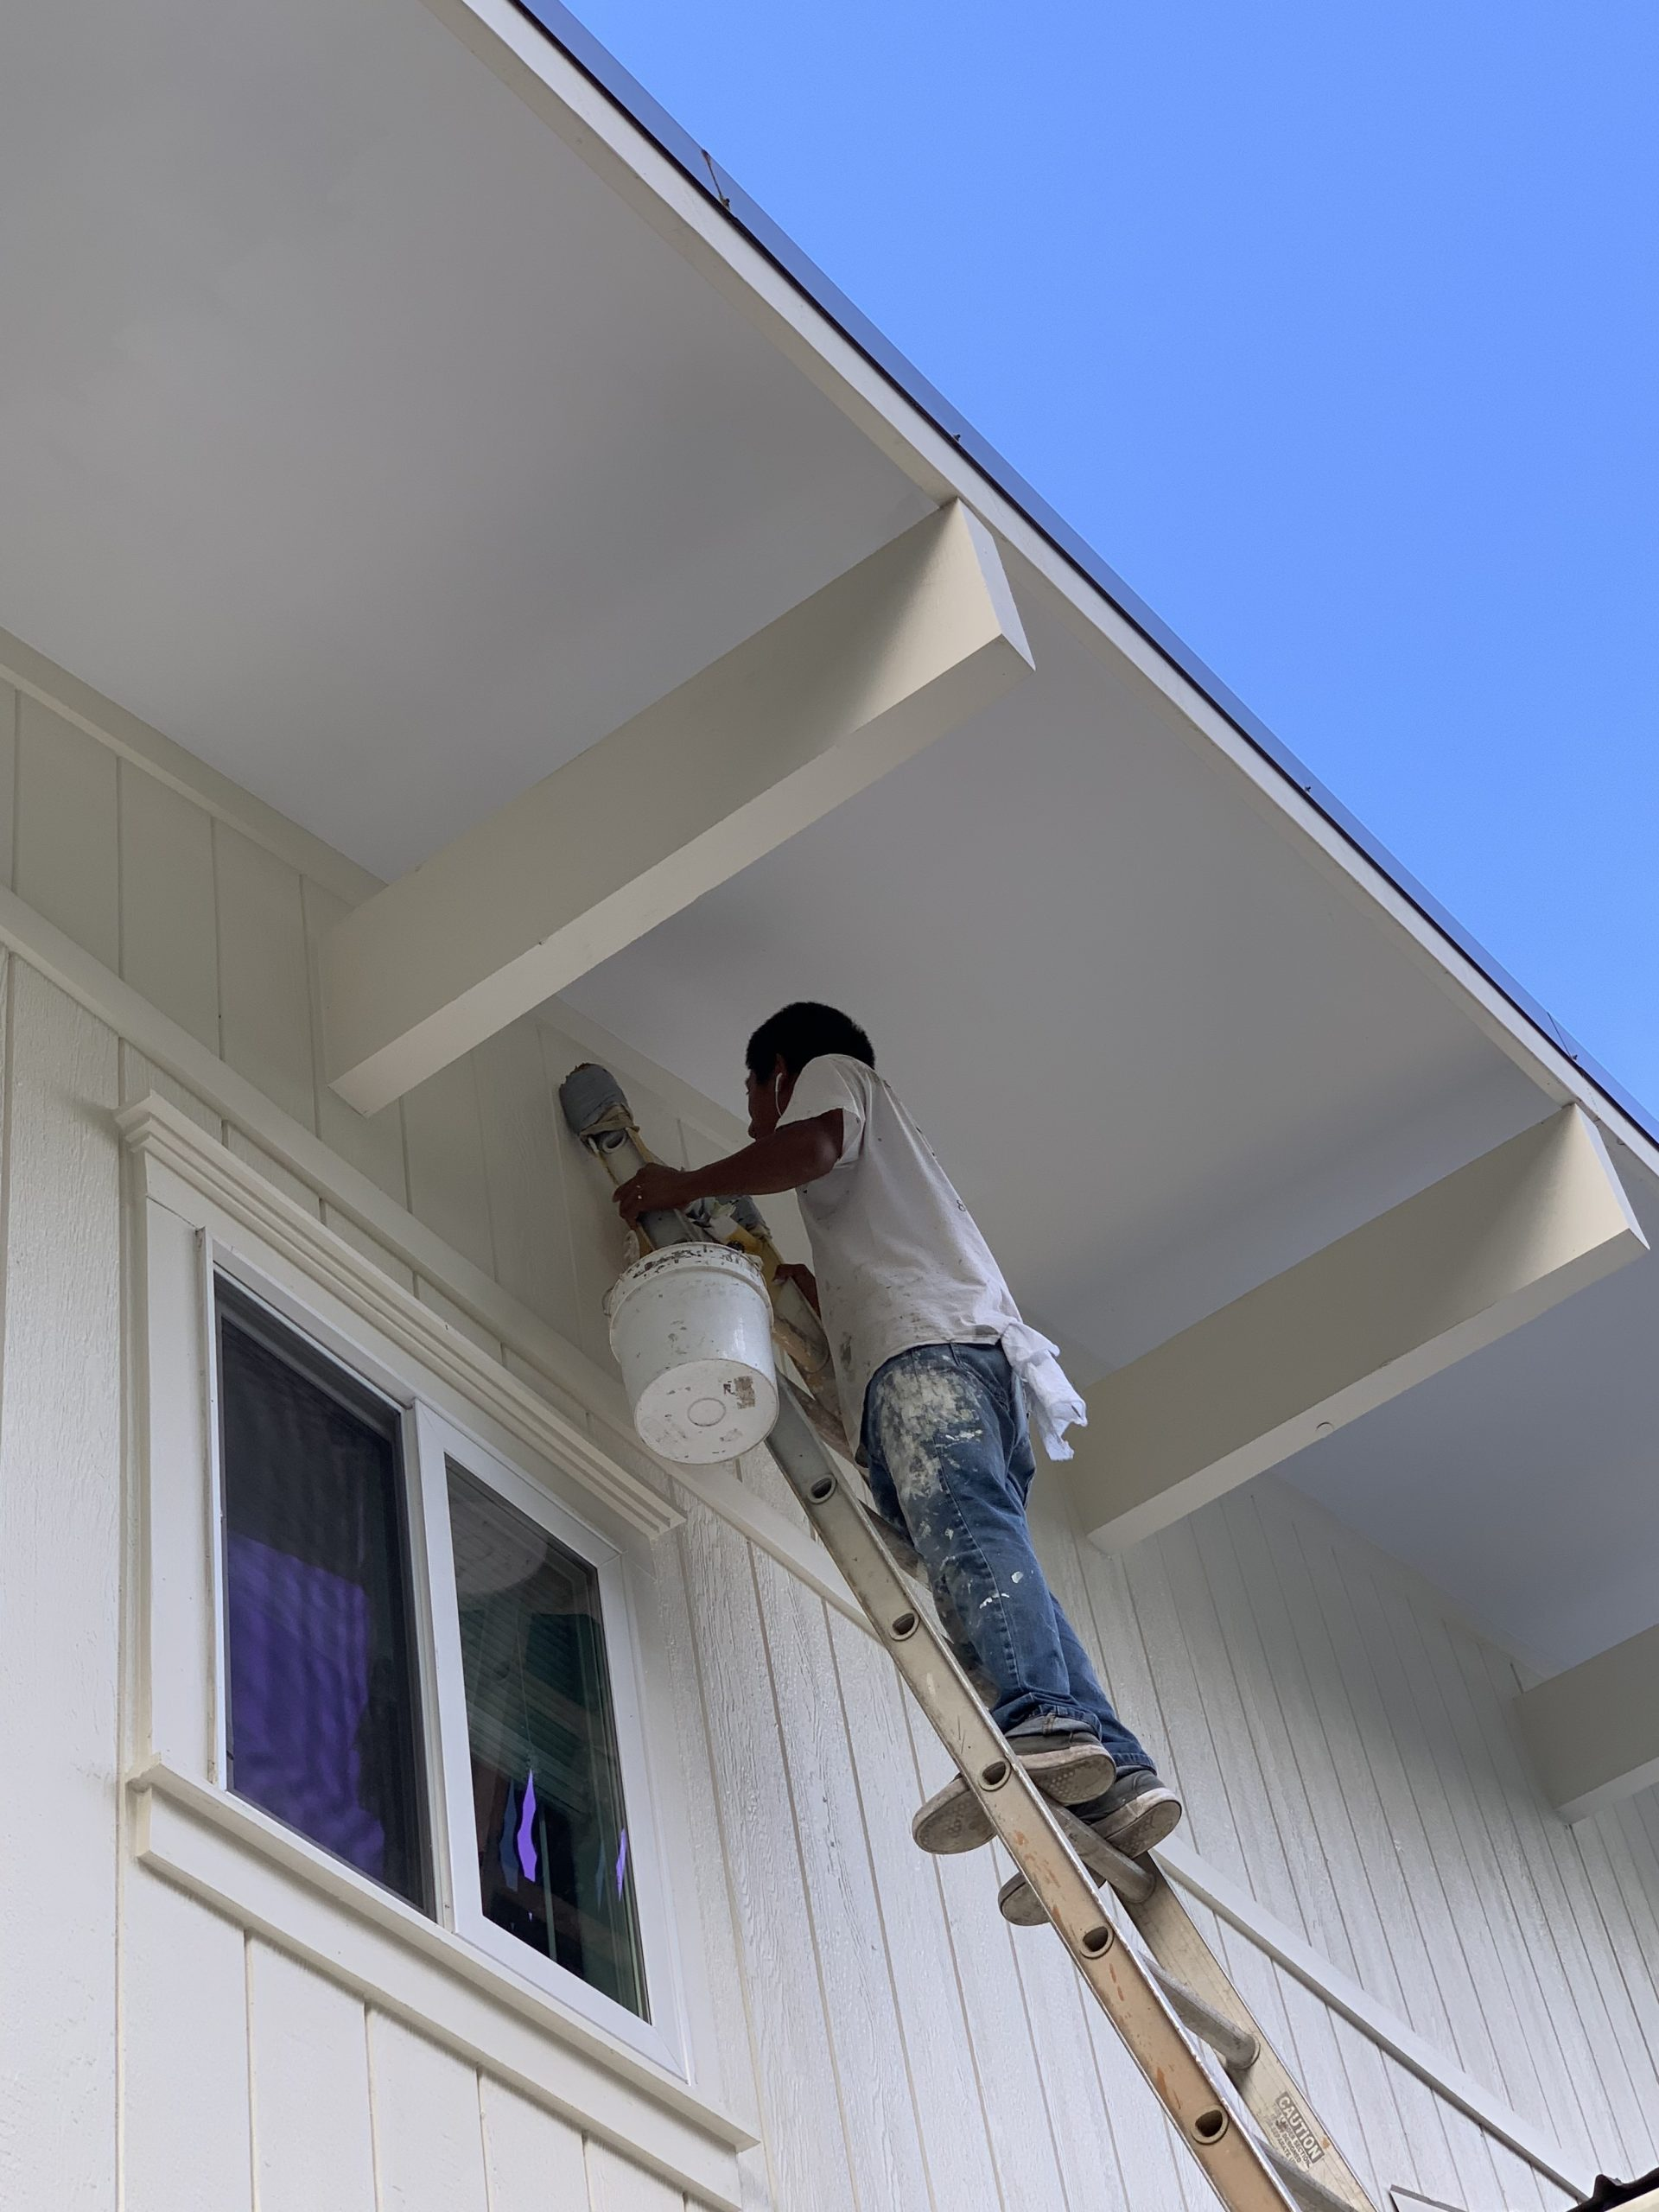 Brown Painting Inc. in Kailua Kona Exterior Painting with an industrial motor lift for tall house professional painting in Kailua Kona, Hawaii.